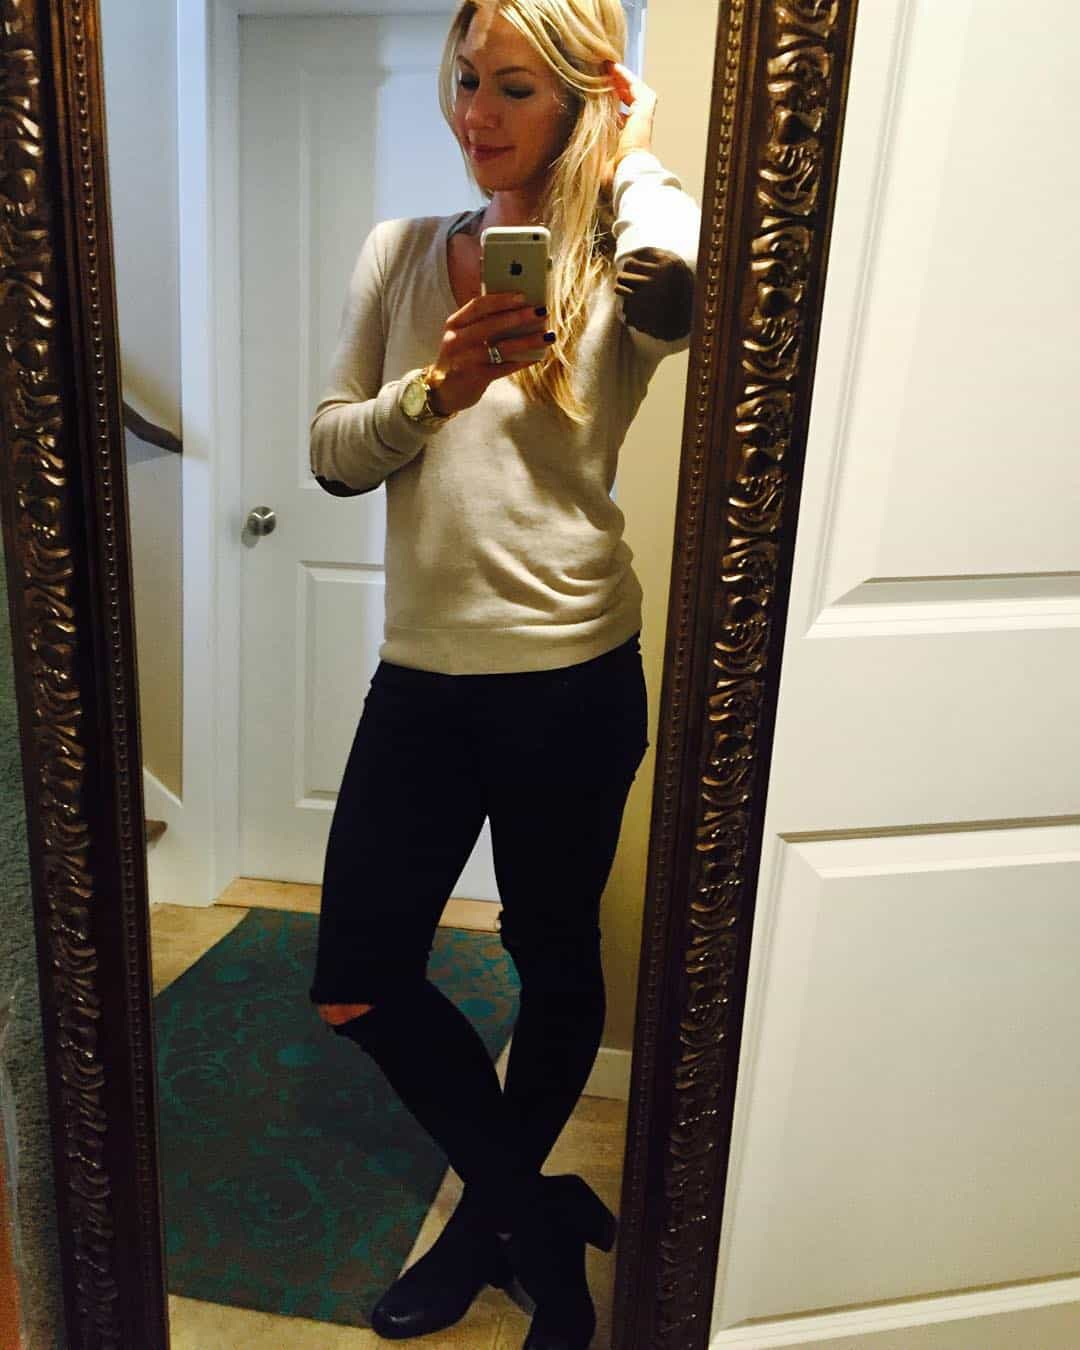 womens clothing, Elbow patches, ripped knees and booties! Yay for a kid-free mommy morning. The fastest 3 hrs I've ever had ;) #workingmom #heels #dressed #noyogapantsforabit